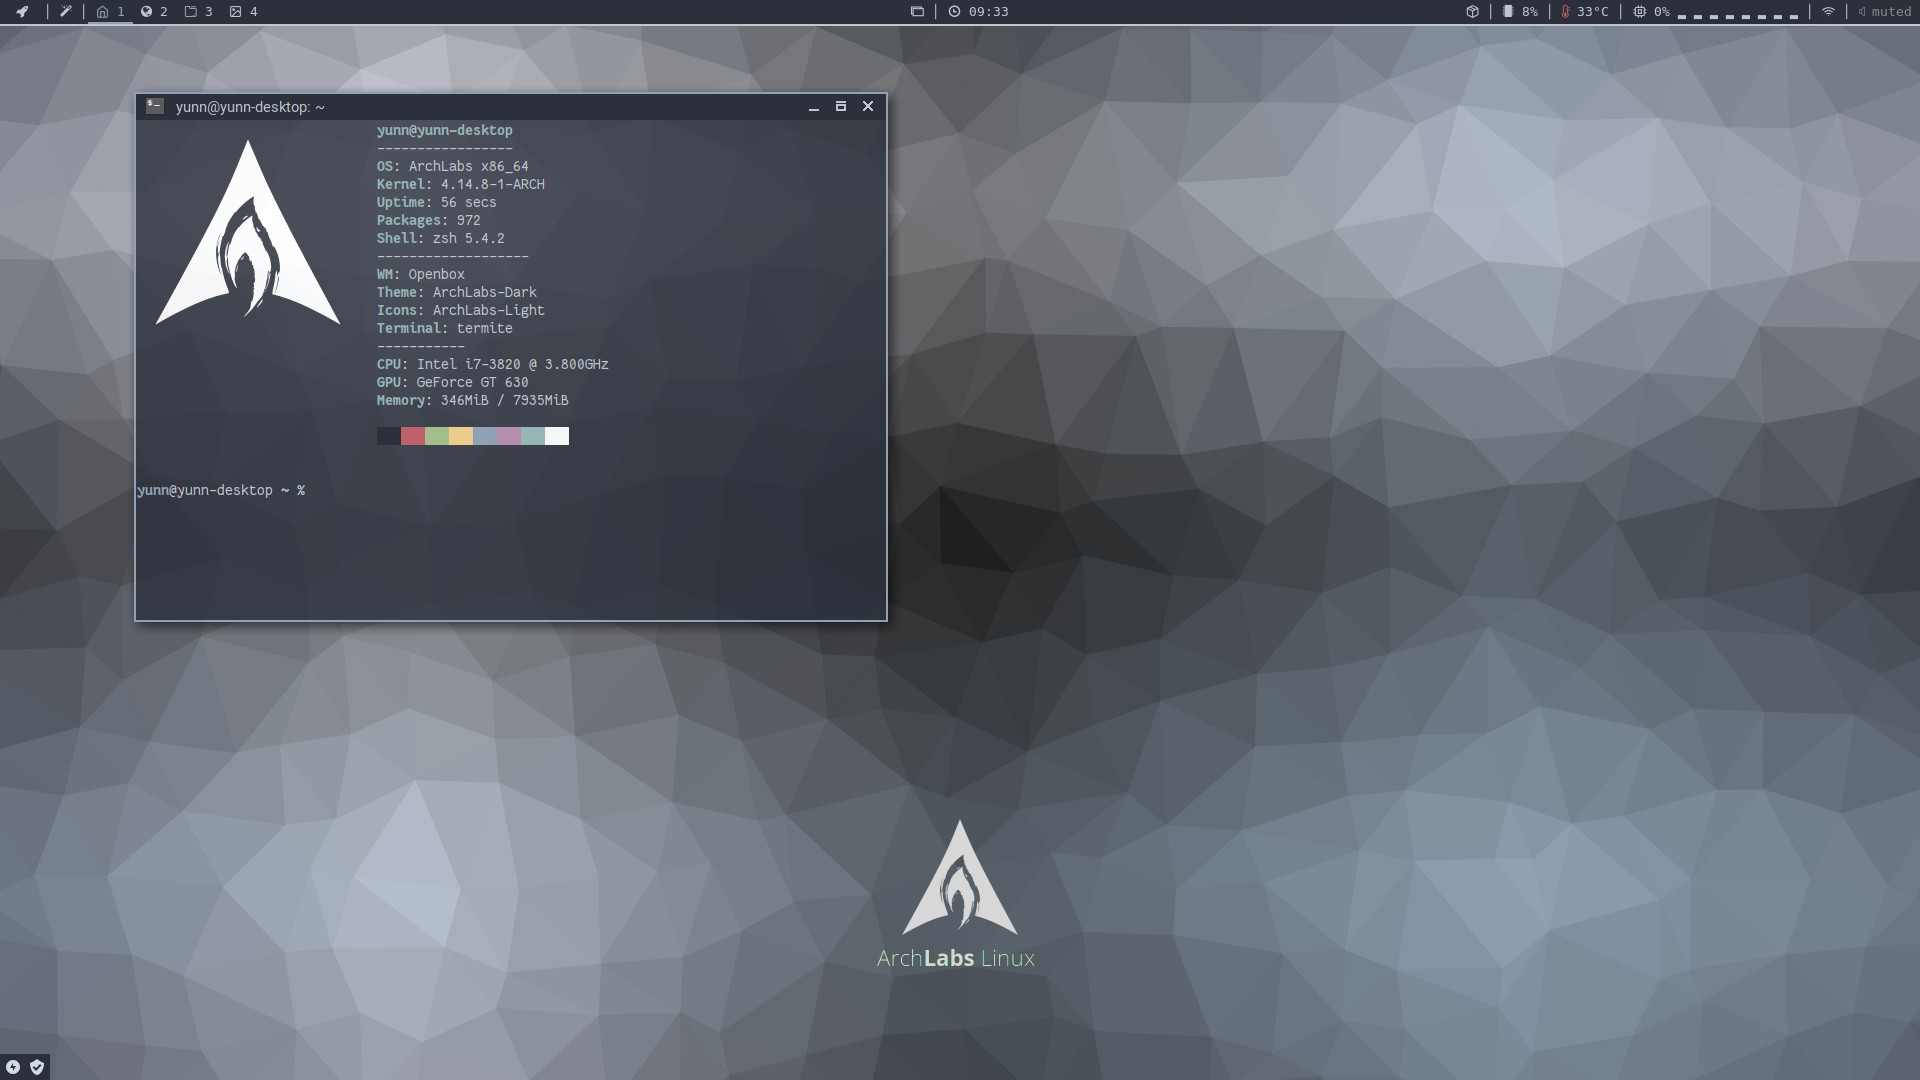 Released ArchLabs 2017.12 Minimo